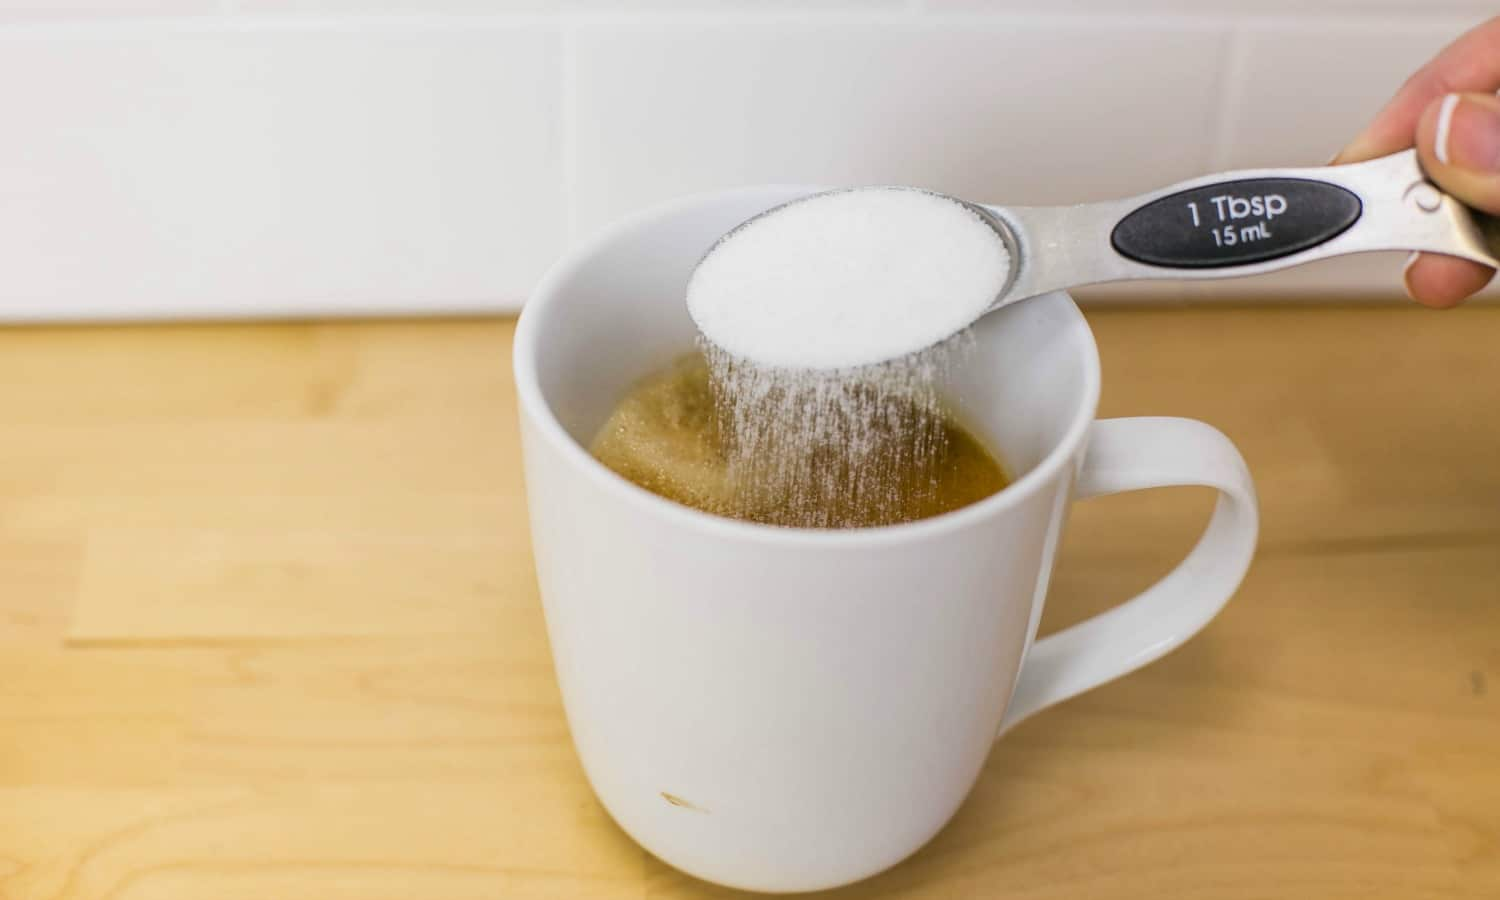 Dissolve the sugar in the coffee.